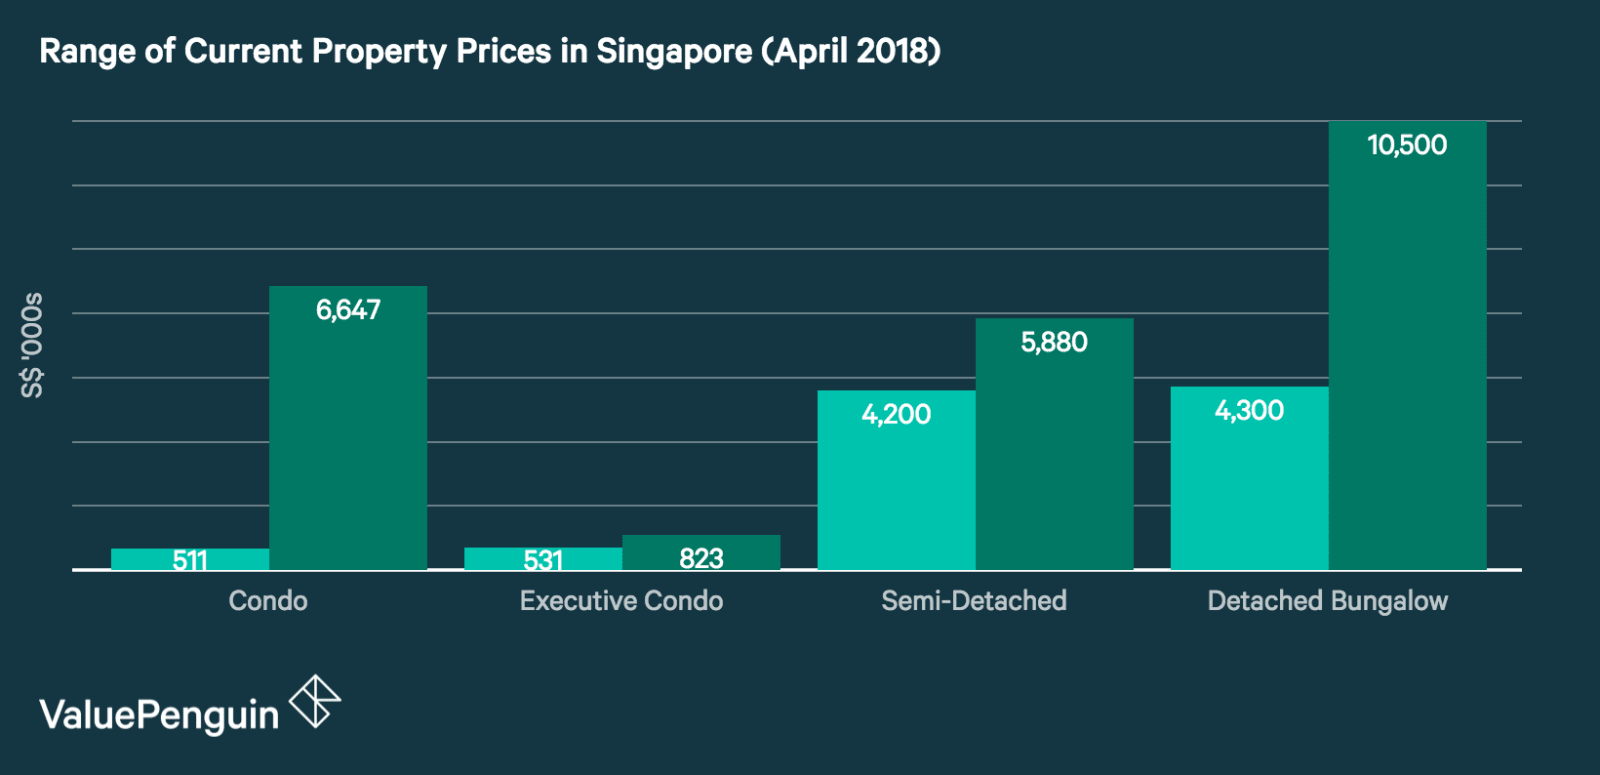 This graph shows the low and high property prices for a variety of Singaporean dwelling types